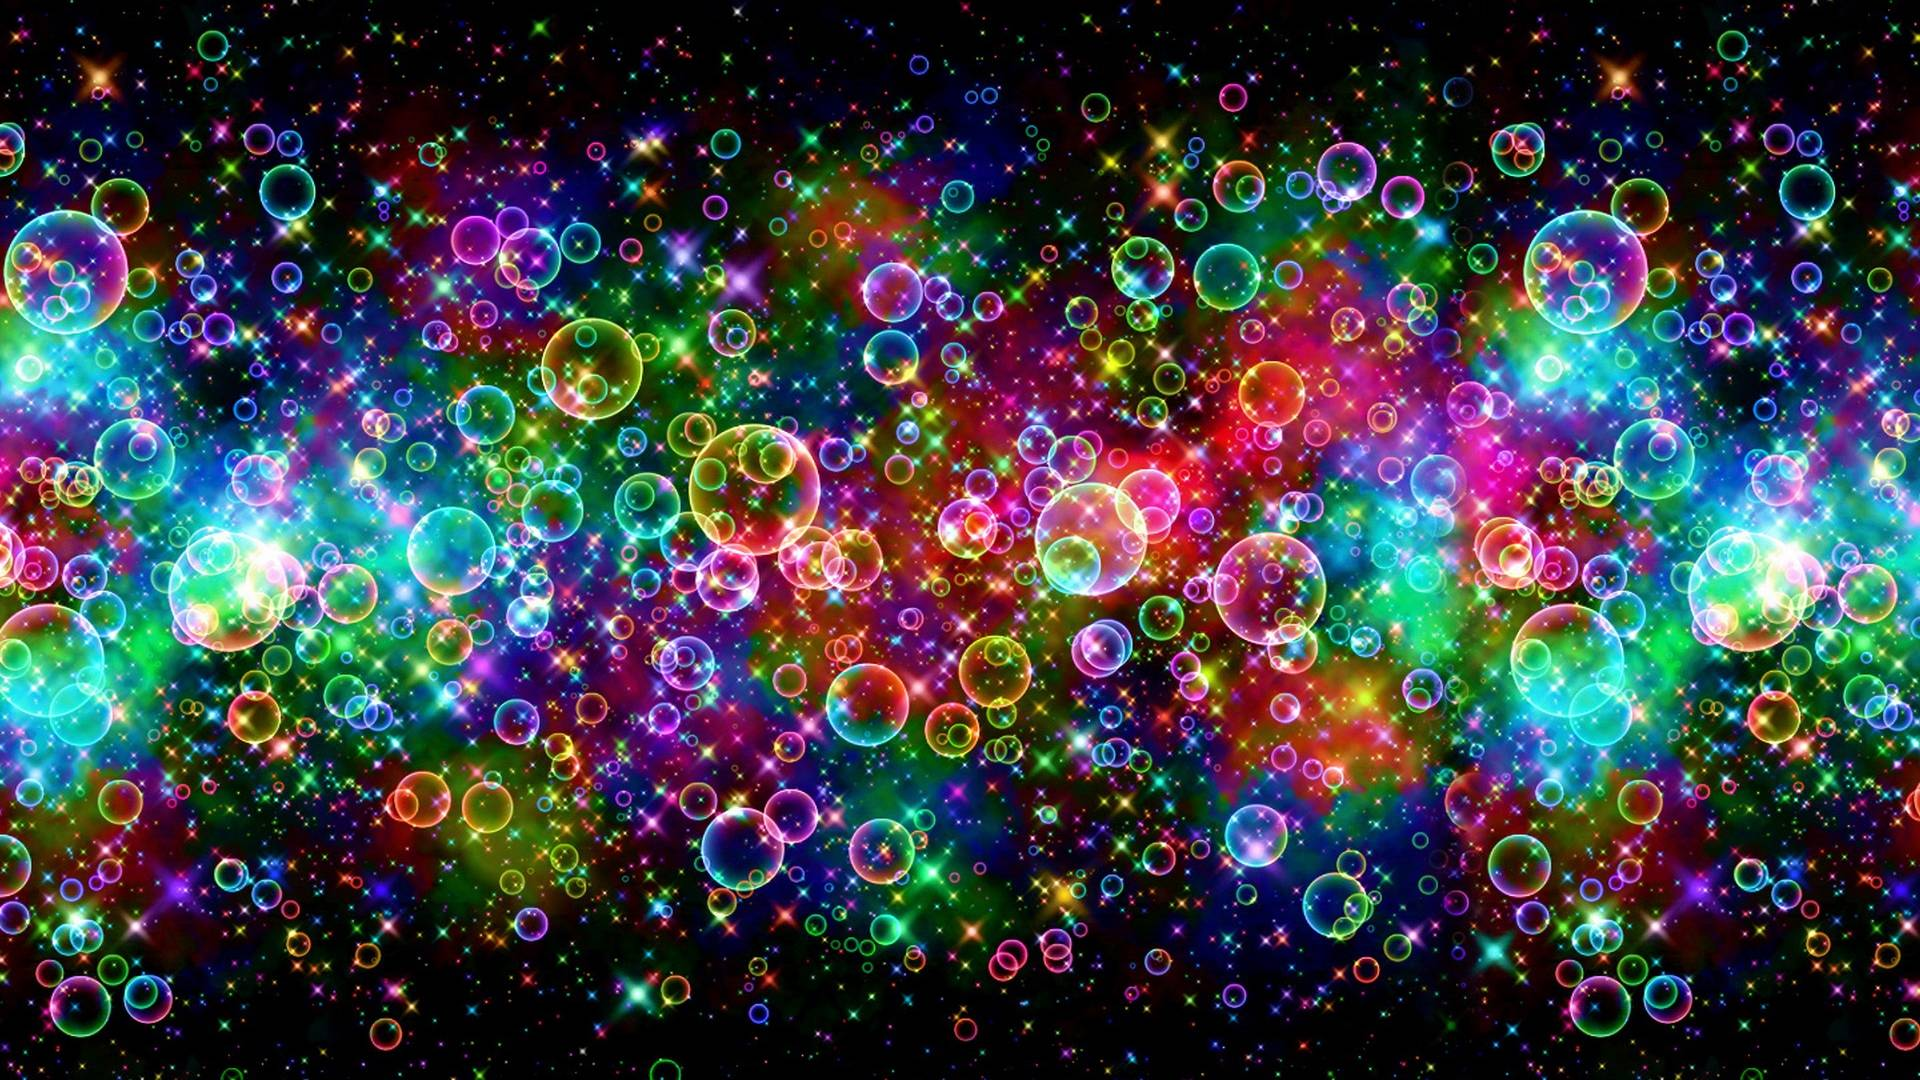 Cool Colorful Background Posted By Ethan Walker